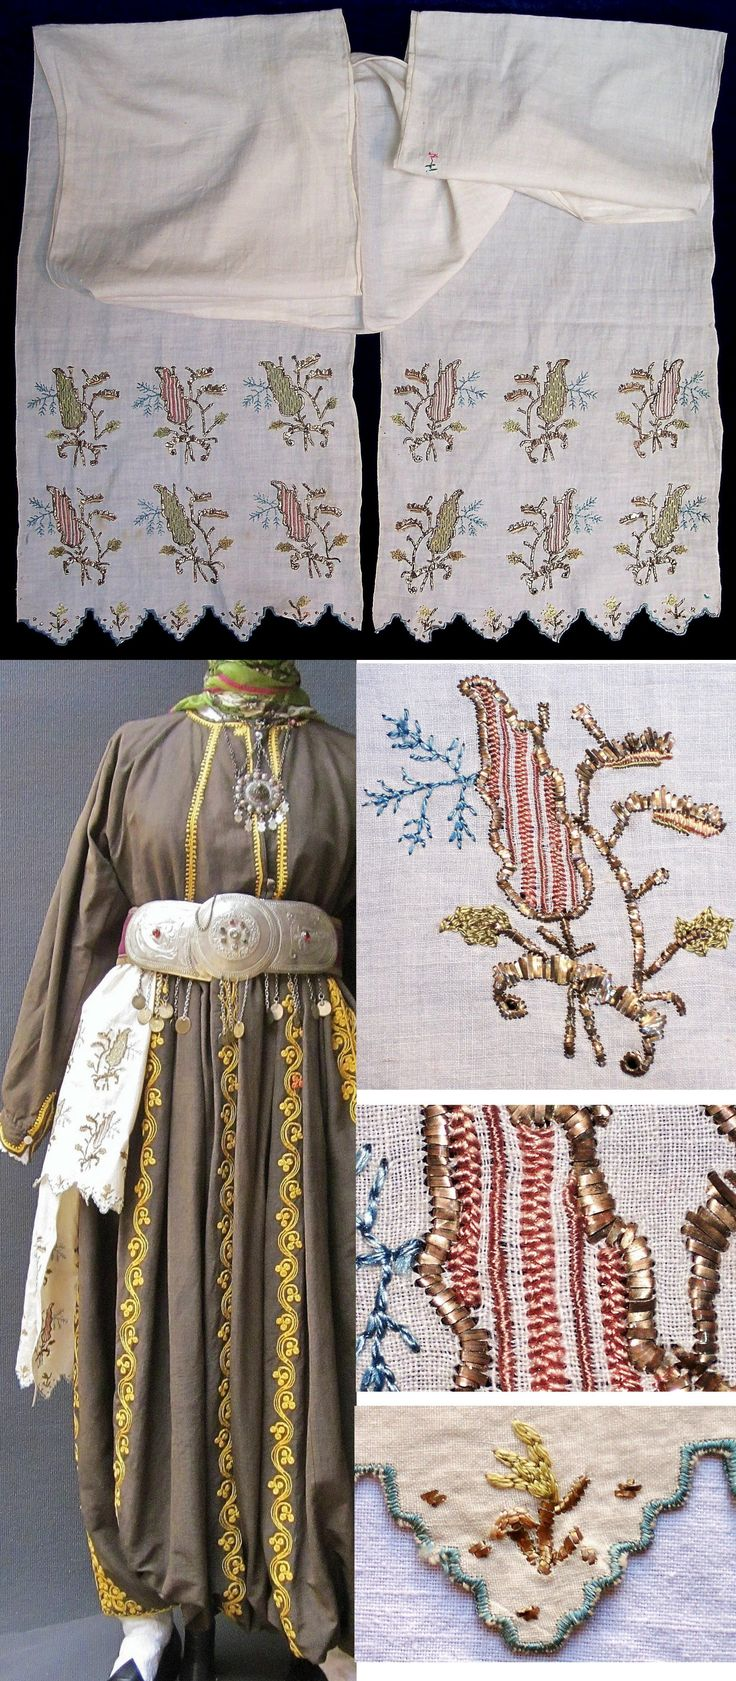 A woman's 'uckur' (waistband/sash) with embroidered ends.  From western Anatolia (probably Bursa), late 19th c.  The embroidery is 'two-sided' (identical on both sides of the fabric) and is executed in both multi-coloured silk and 'tel kırma' (motives obtained by sticking narrow metallic strips through the fabric and folding them.).  (Inv.nr. brdw037 - Kavak Costume Collection - Antwerpen/Belgium).